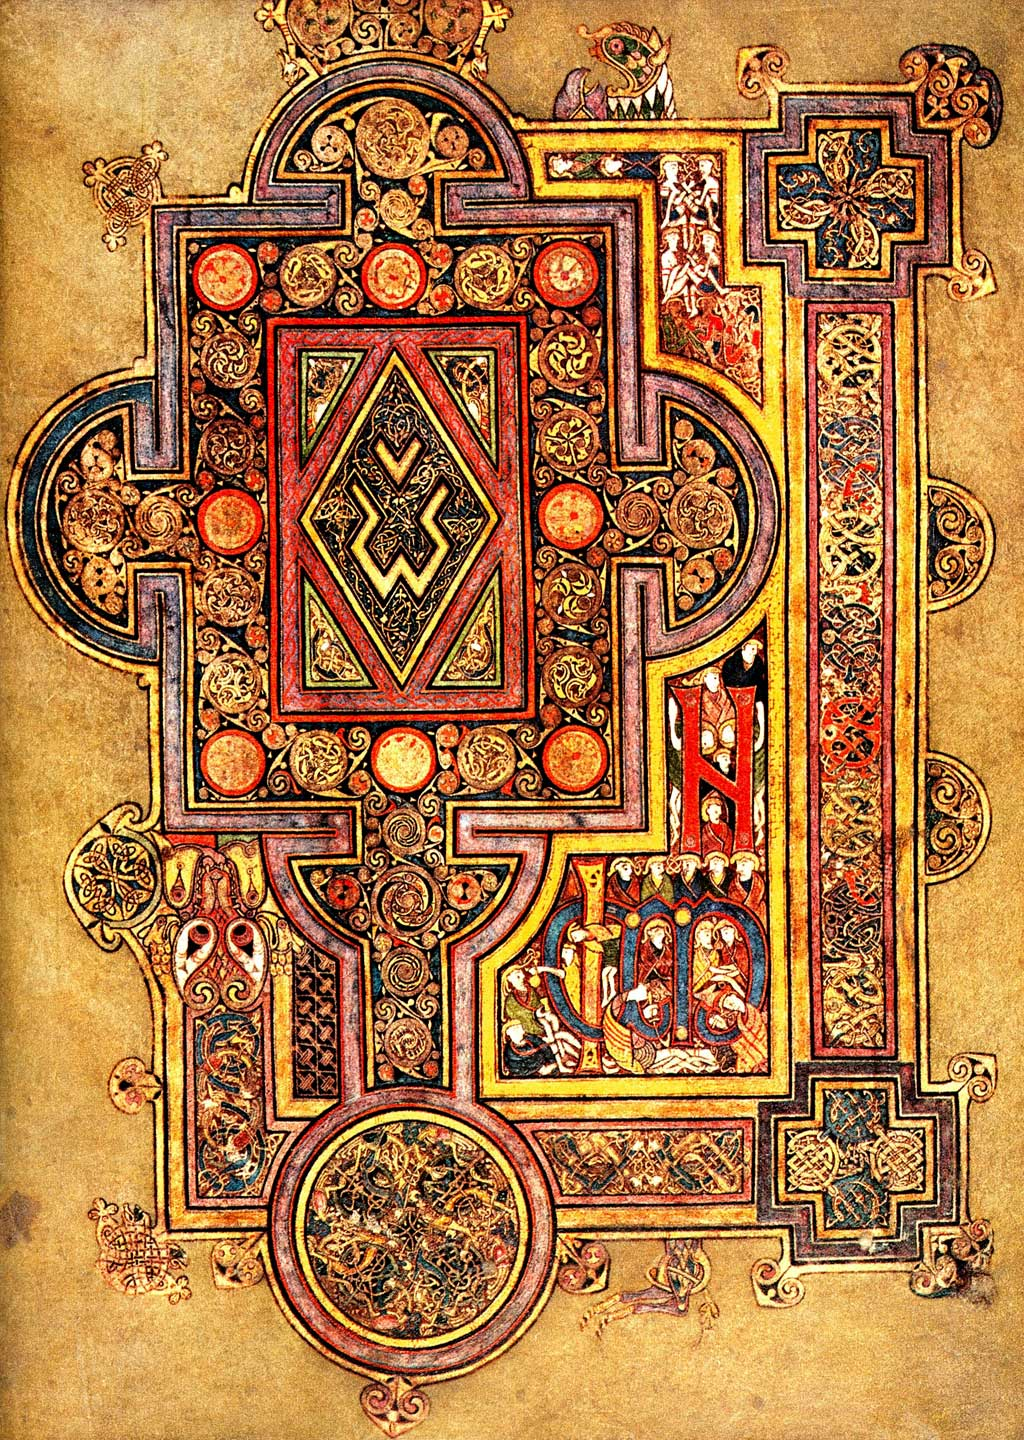 the book of kells This past summer i was able to visit the exhibit on the book of kells in dublin and i felt overwhelmed at this amazing work of art and spirituality.